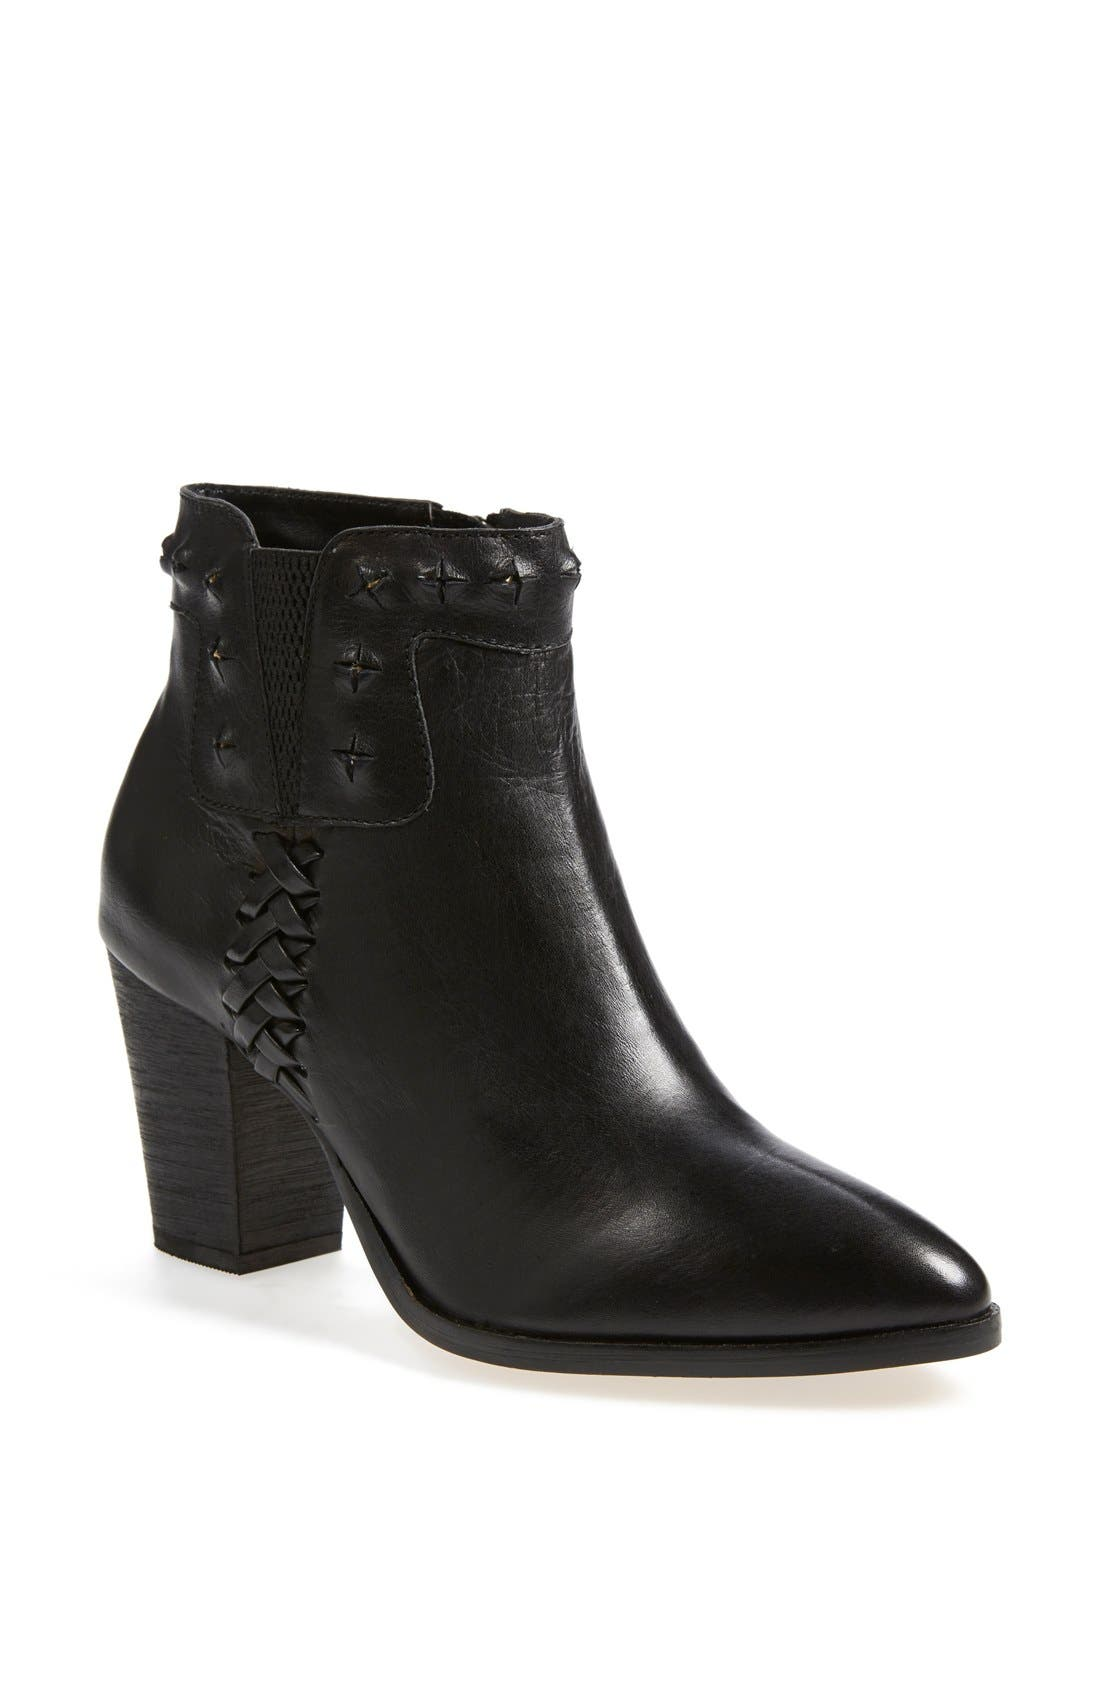 DV BY DOLCE VITA 'Cactus' Studded Bootie, Main, color, 004